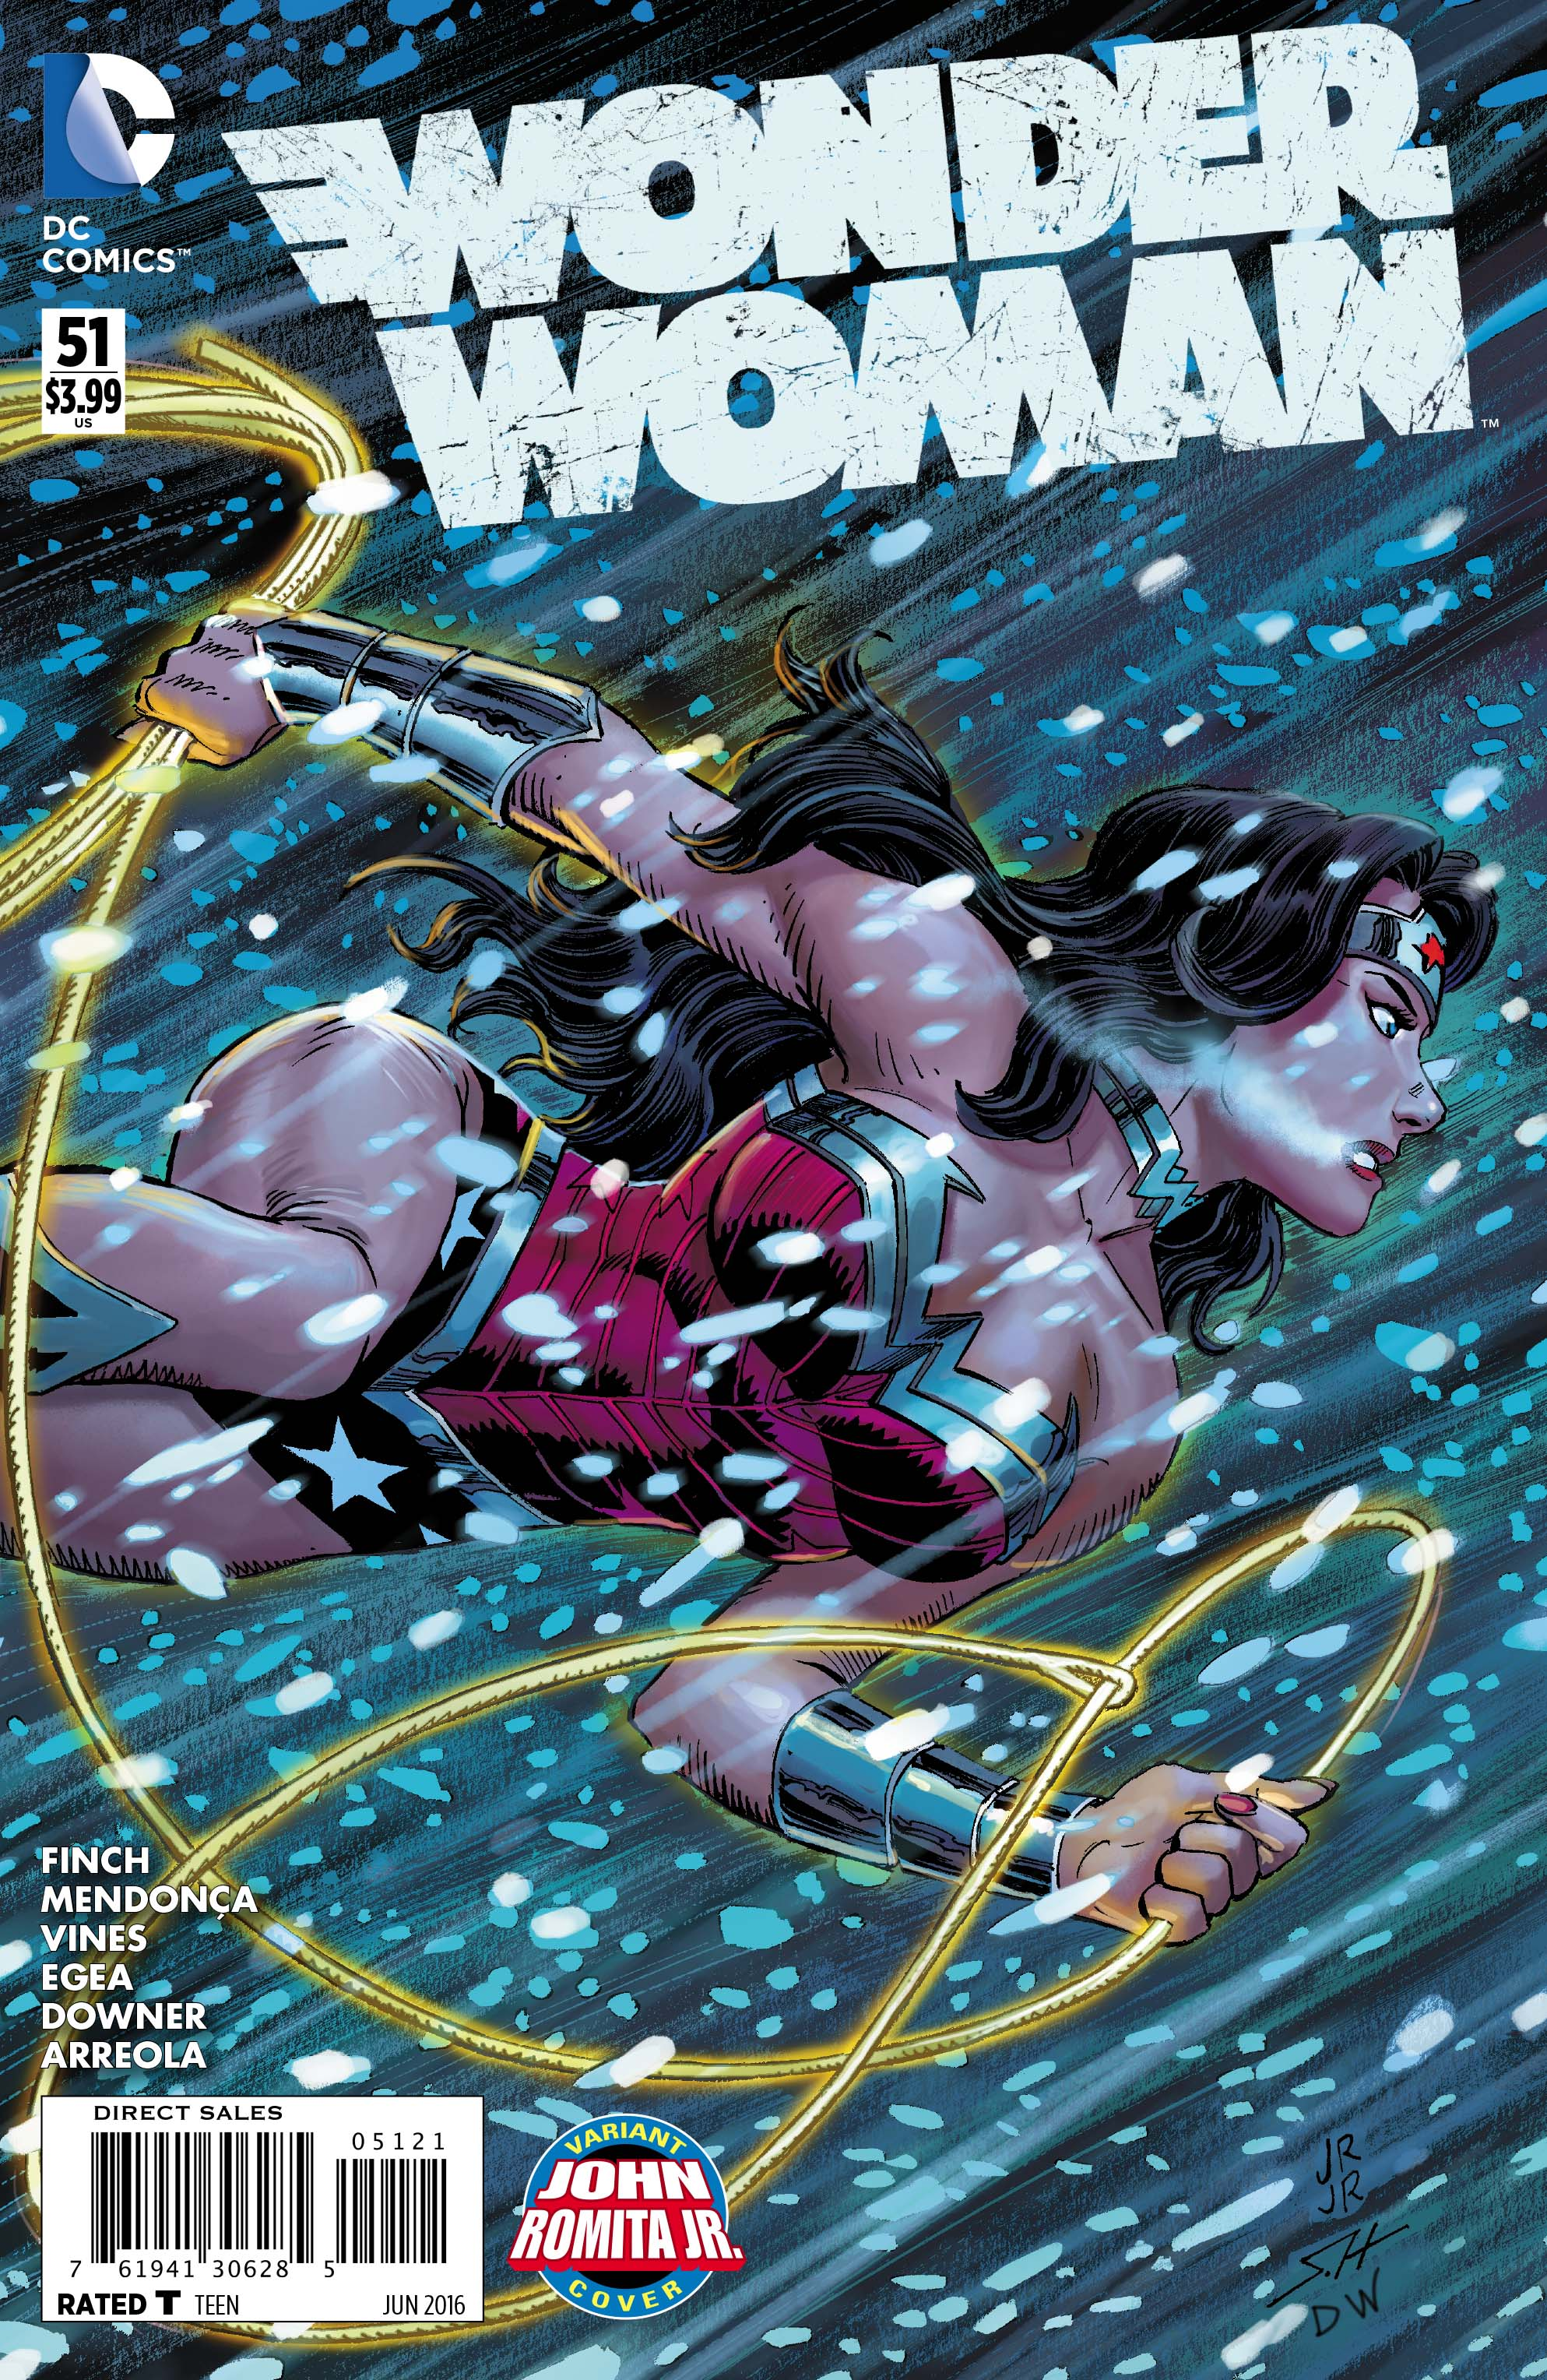 WONDER WOMAN #51 alternate cover